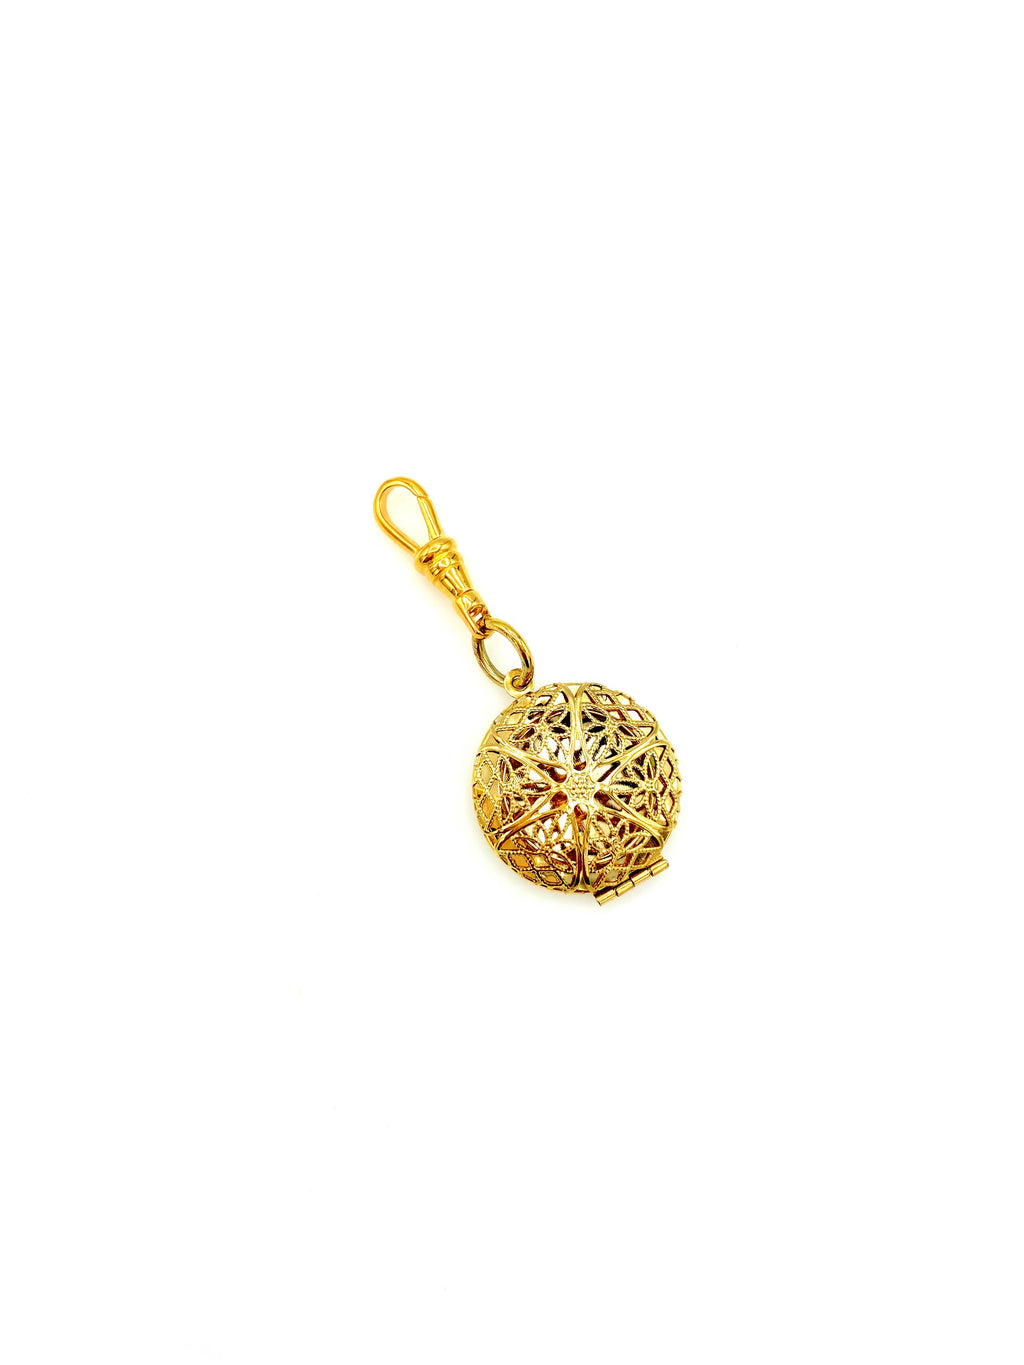 Gold Filigree Victorian Revival Locket Charm Swivel Fob Jewelry